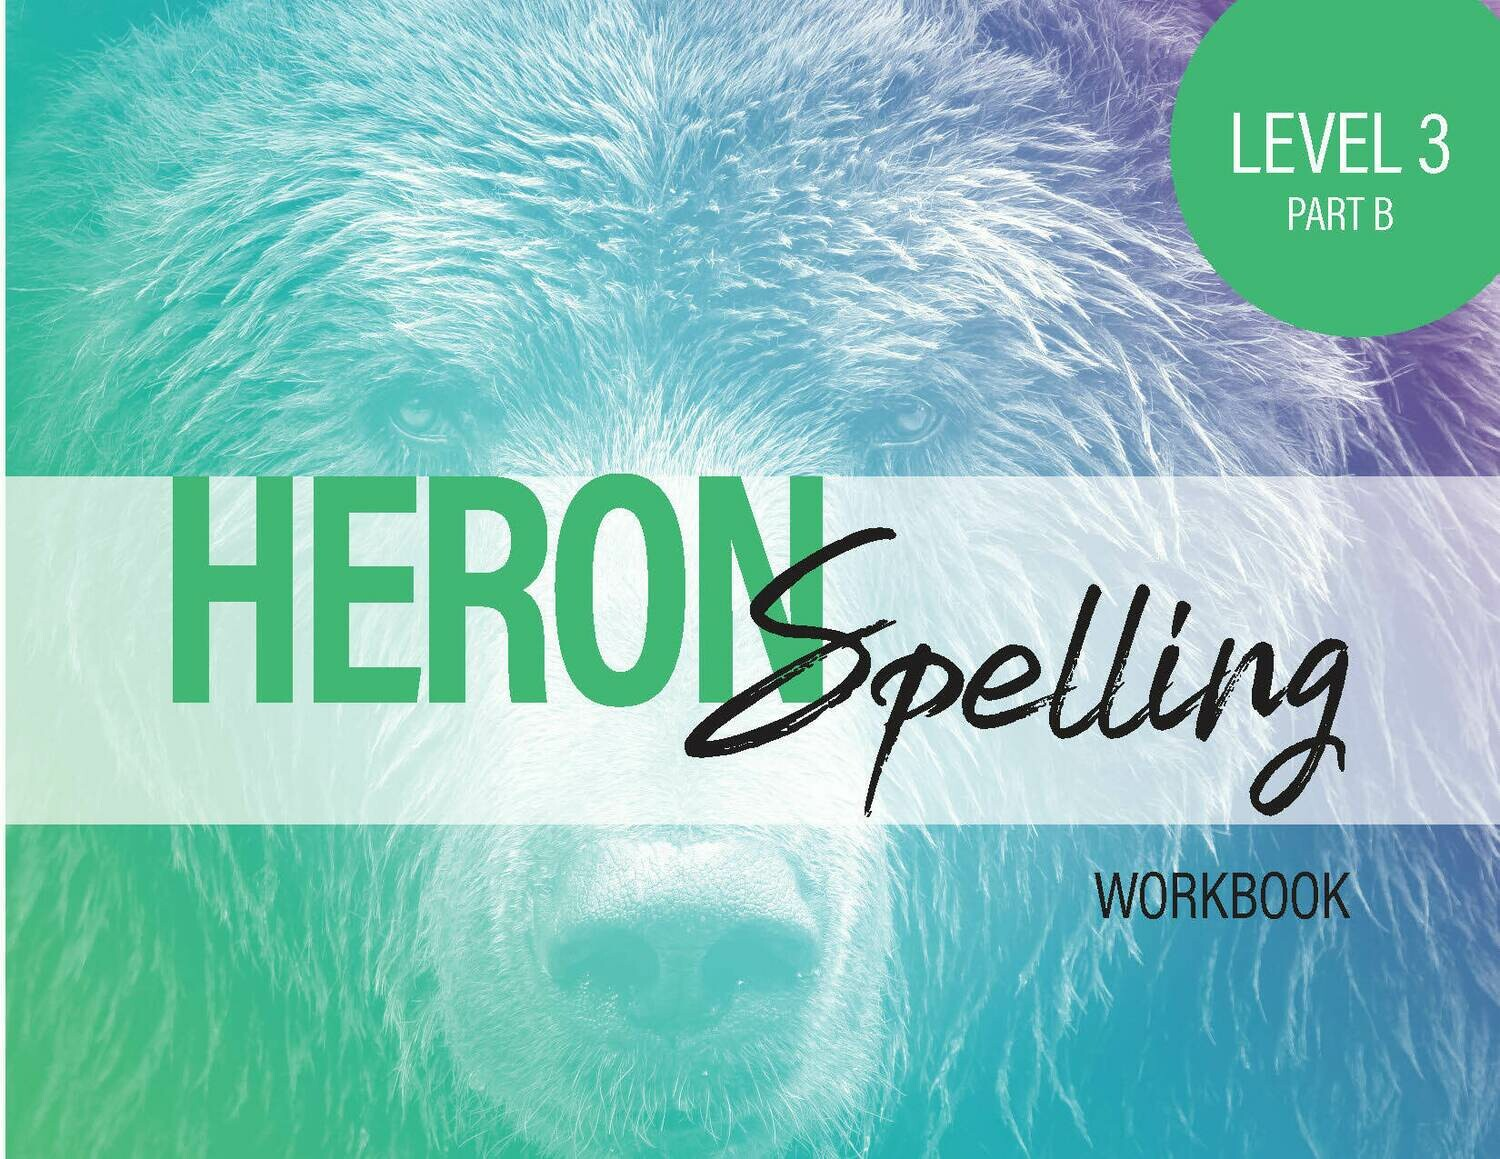 Heron Spelling Level 3B Workbook